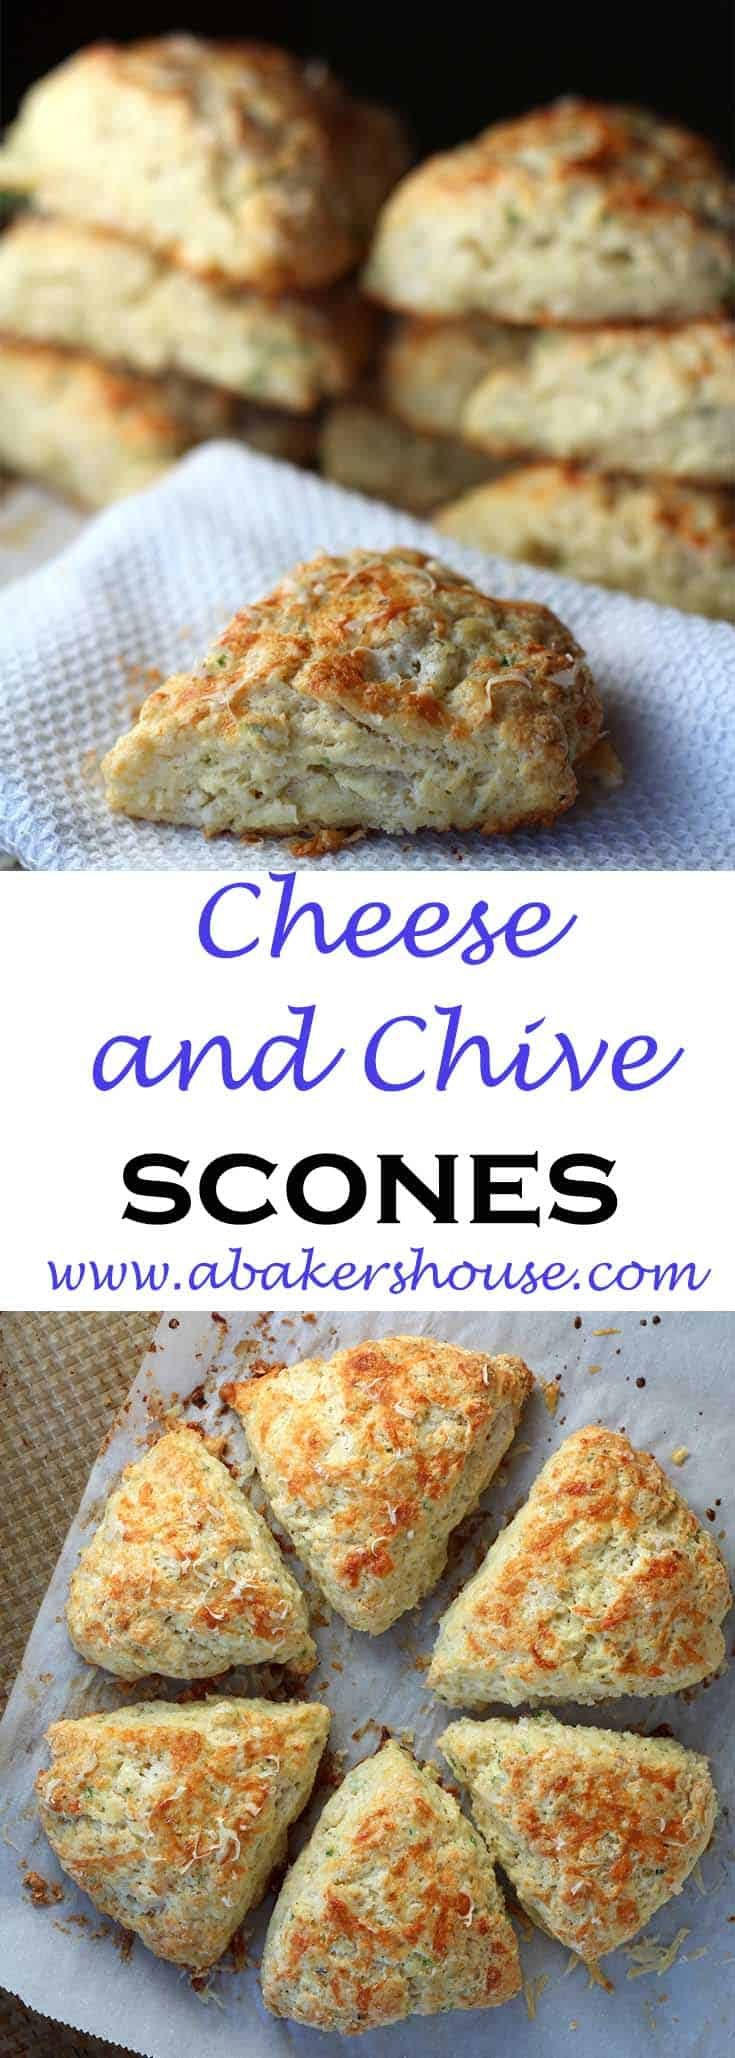 Cheese and Chive Scones: have these scones for breakfast, lunch, or dinner. Their delicate and layered interior makes them more biscuit-like and the cheesy crust and golden outside brings these back into the world of savory scones. #sconerecipe #abakershouse #scones #chives #cheddar #savoryrecipe